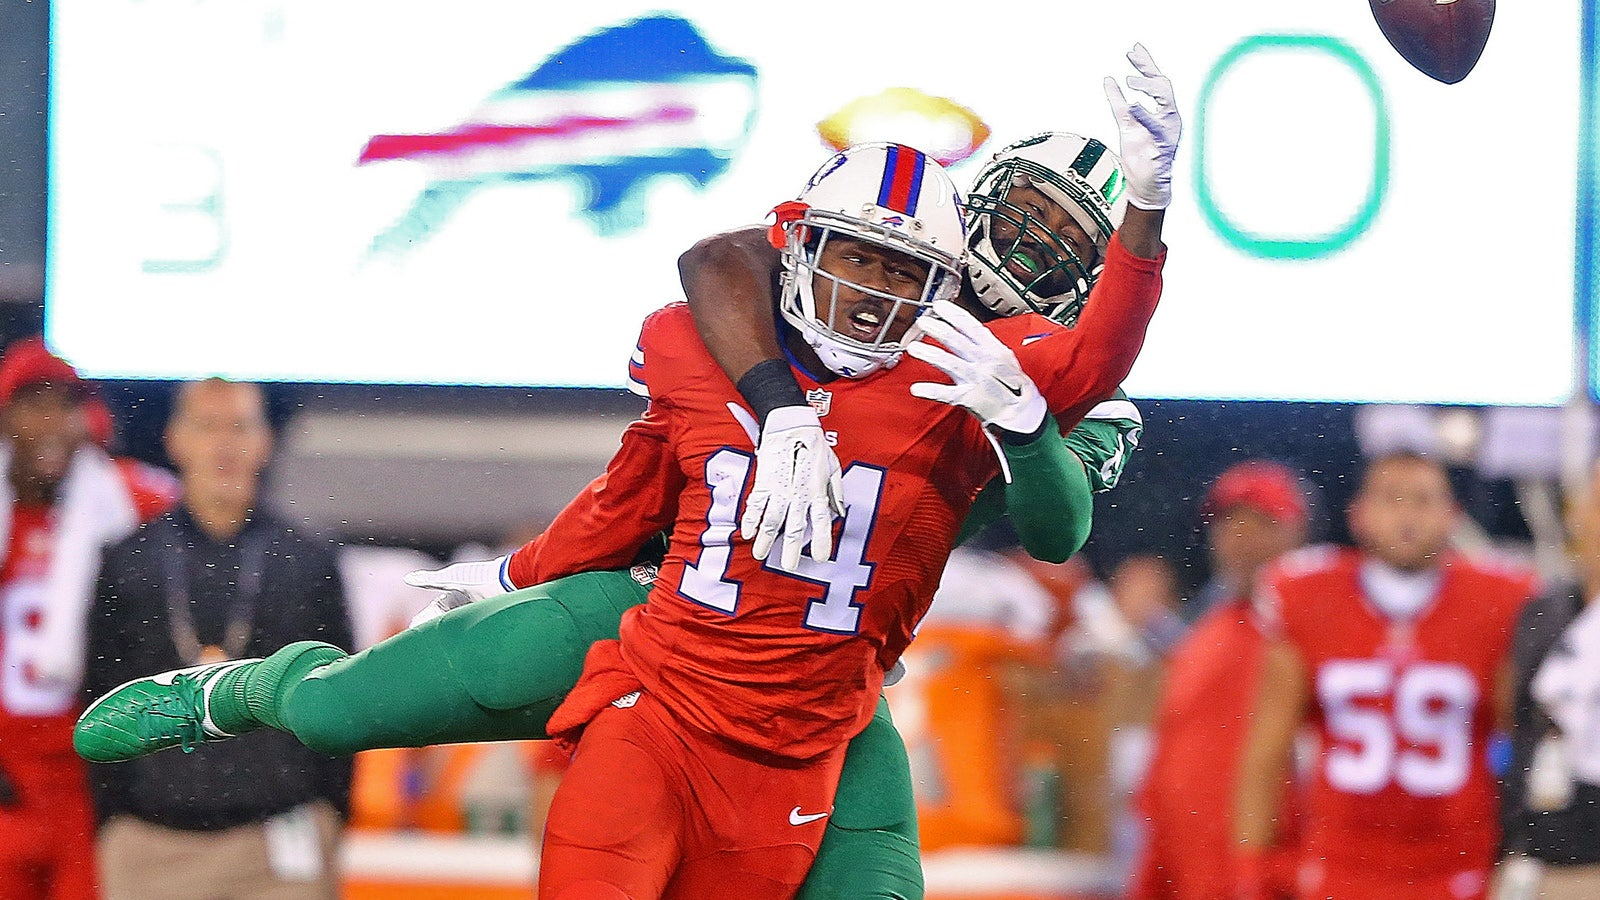 promo code a63f5 81807 Twitter reacts to Bills, Jets wearing 'Color Rush' uniforms ...